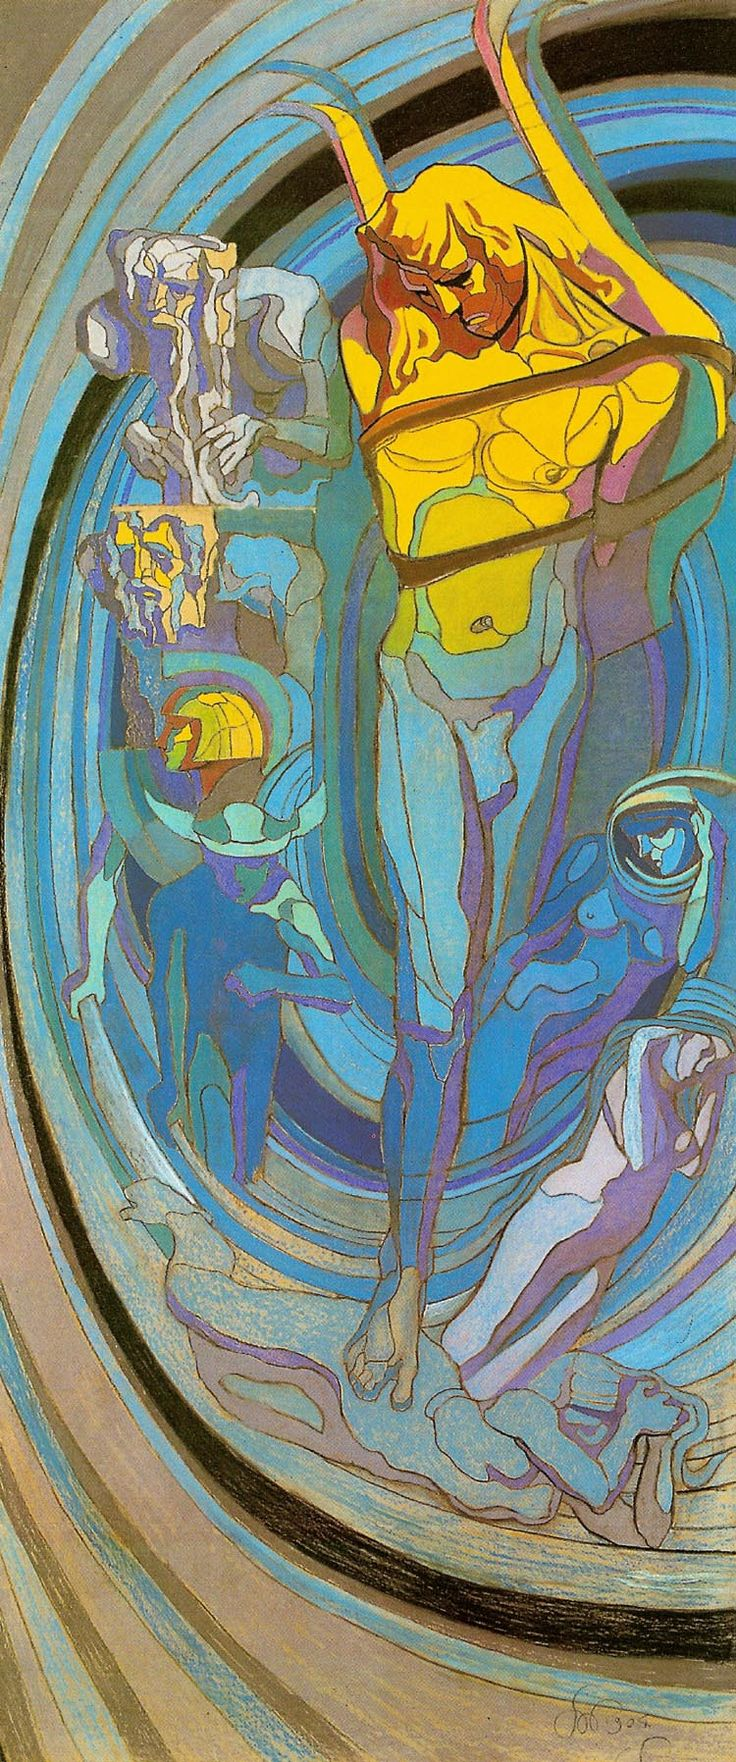 "Stanisław Wyspiański (Polish 1869–1907) ""Apollo"", 1904, stained glass design, pastel, 343 x 146 cm, National Museum, Cracow."